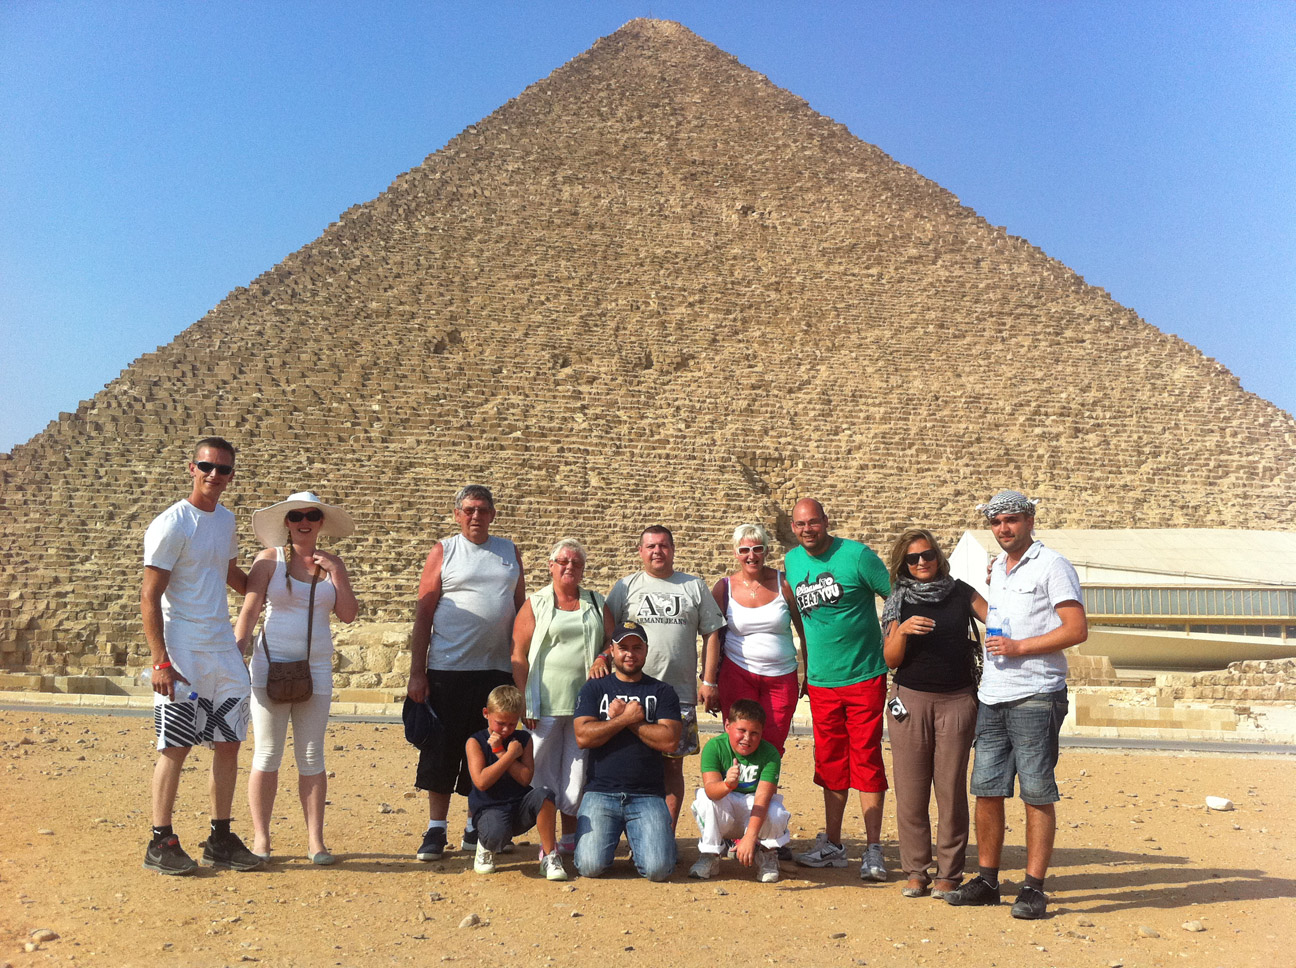 Cheops pyramid Cairo tour